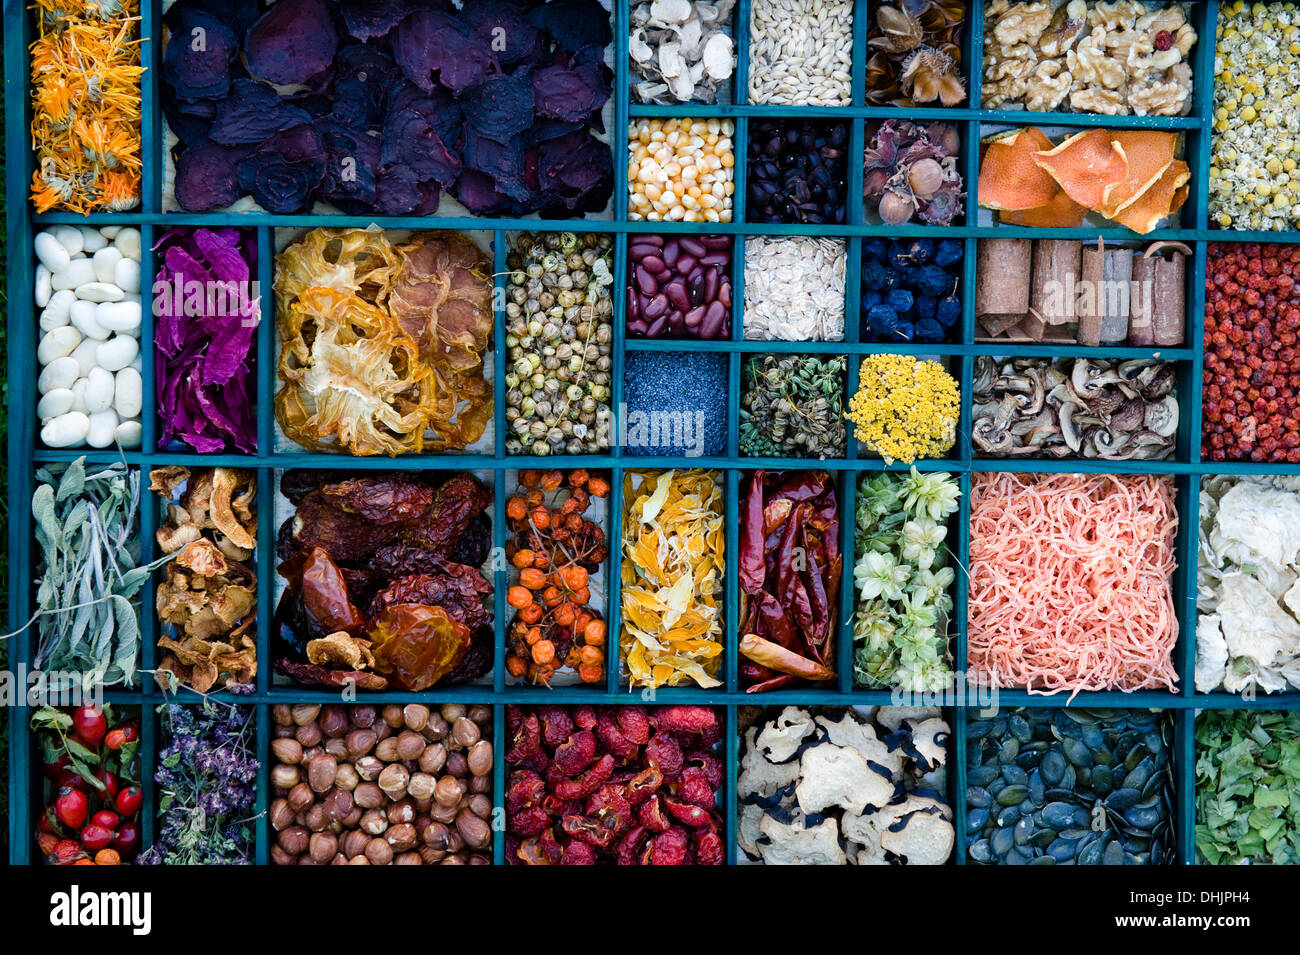 Dried flower blossoms, herbs and grains, food drying, desiccated food, homemade - Stock Image